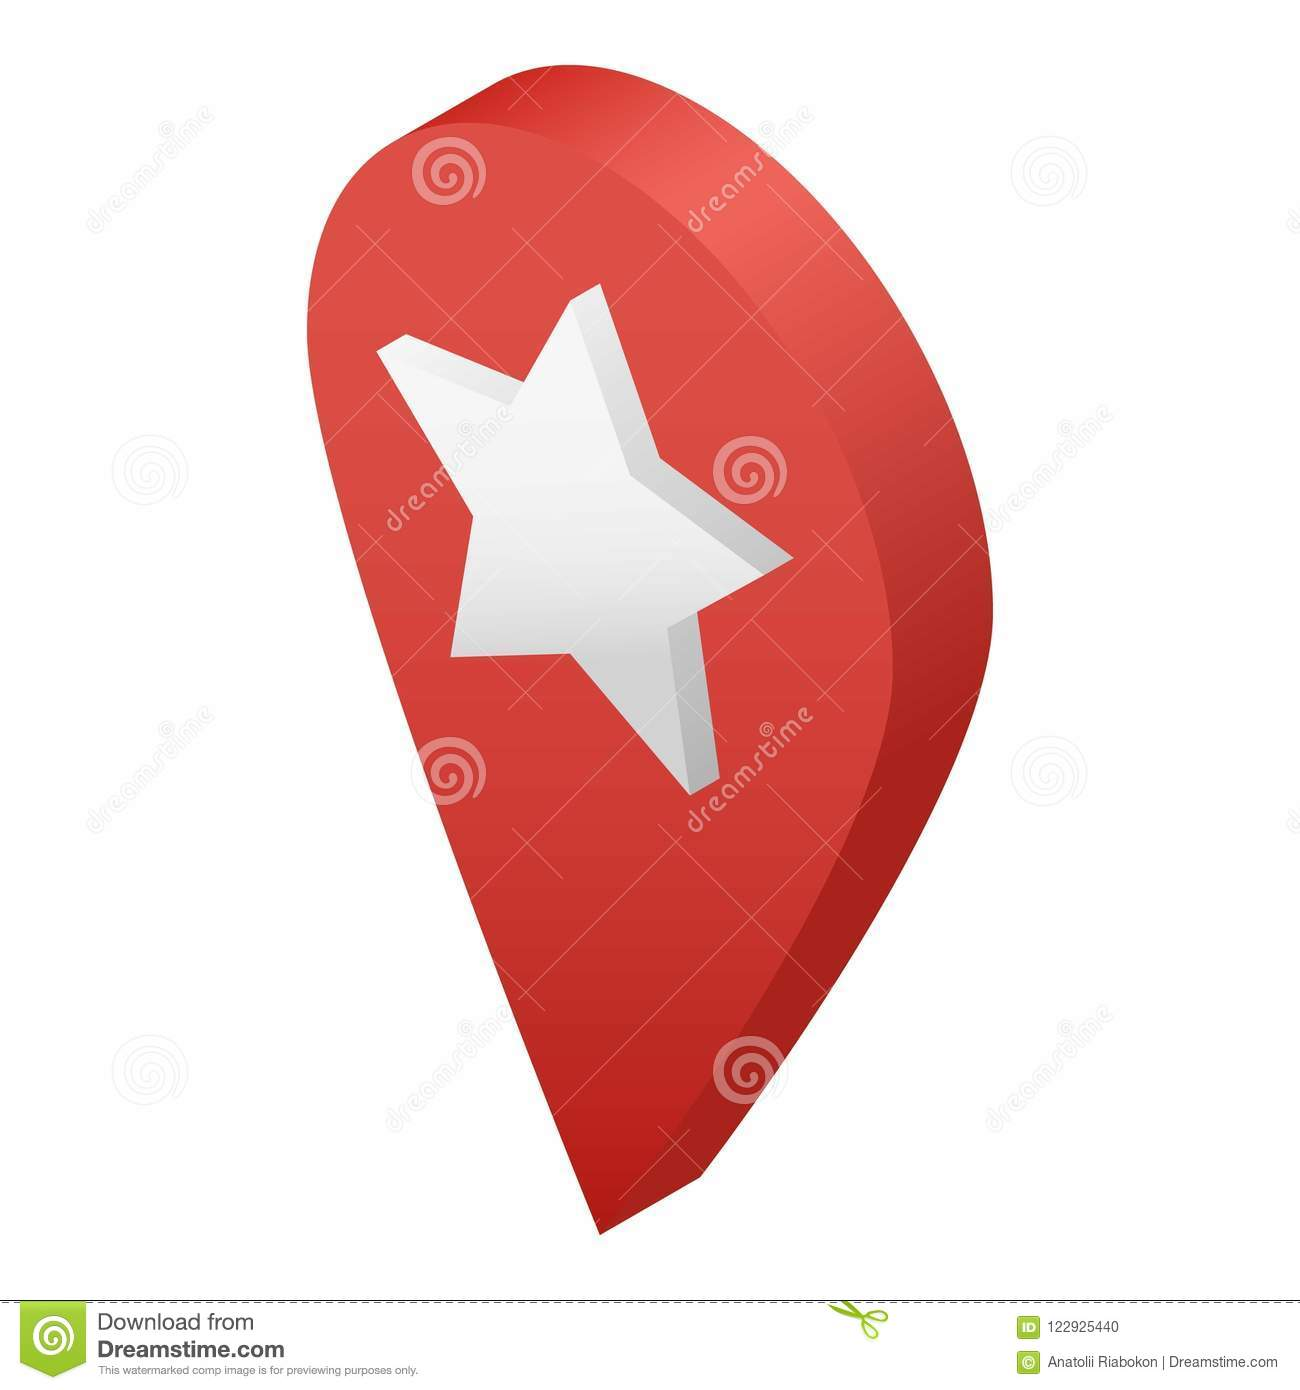 Star Map Pin Icon, Isometric Style Stock Vector ... Google Map Pin Icon on google maps walking icon, map center icon, map marker pin icon, google maps bus icon, google map icon police, google map icon symbols, flag map pin icon, google maps icon iphone, google map man icon, google scissors icon, google home icon, apple map pin icon, google trash icon, google map share icon, google map icon maker, google map address icon, green map marker icon, google map filter icon, google map icon green, google map flag icon,